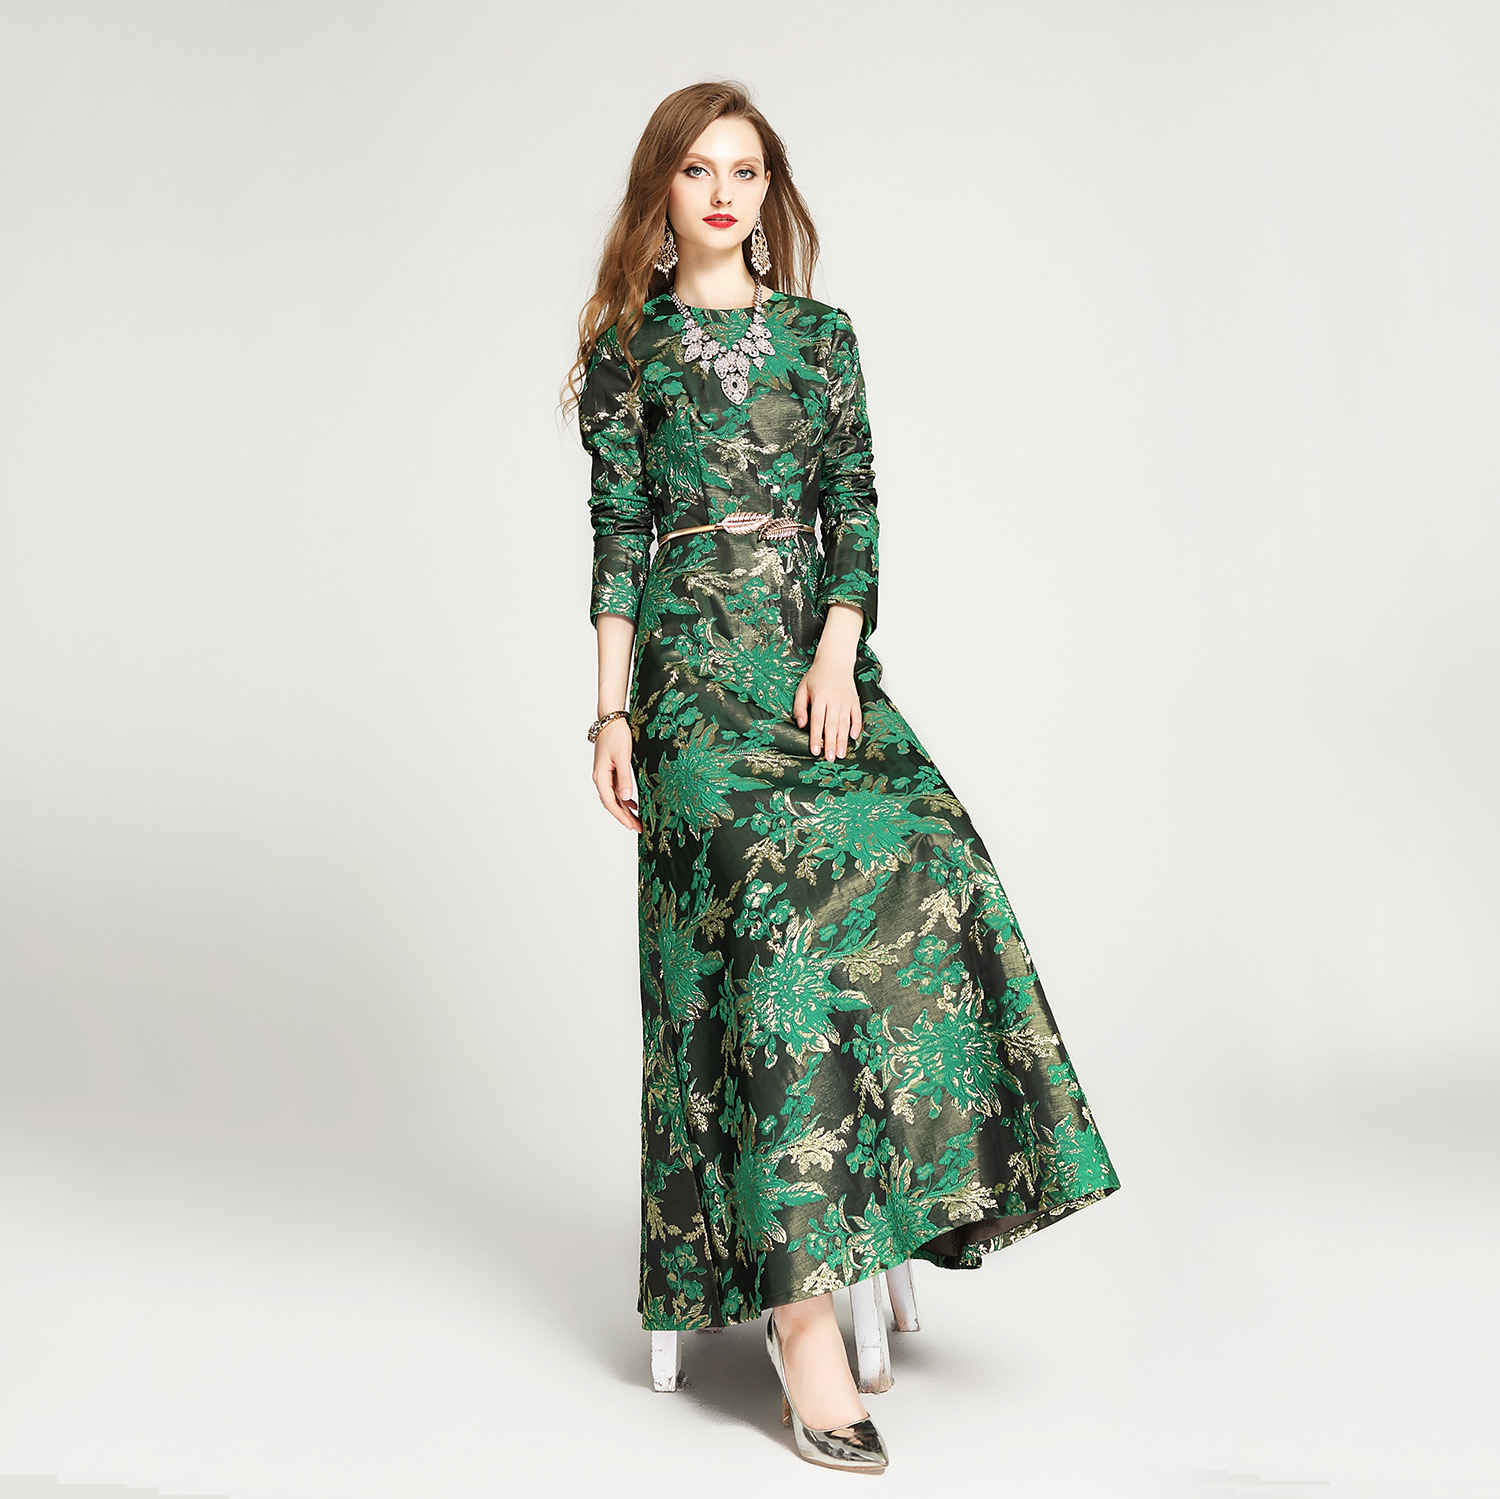 2019 New Spring And Autumn Women's Green Floral Jacquard